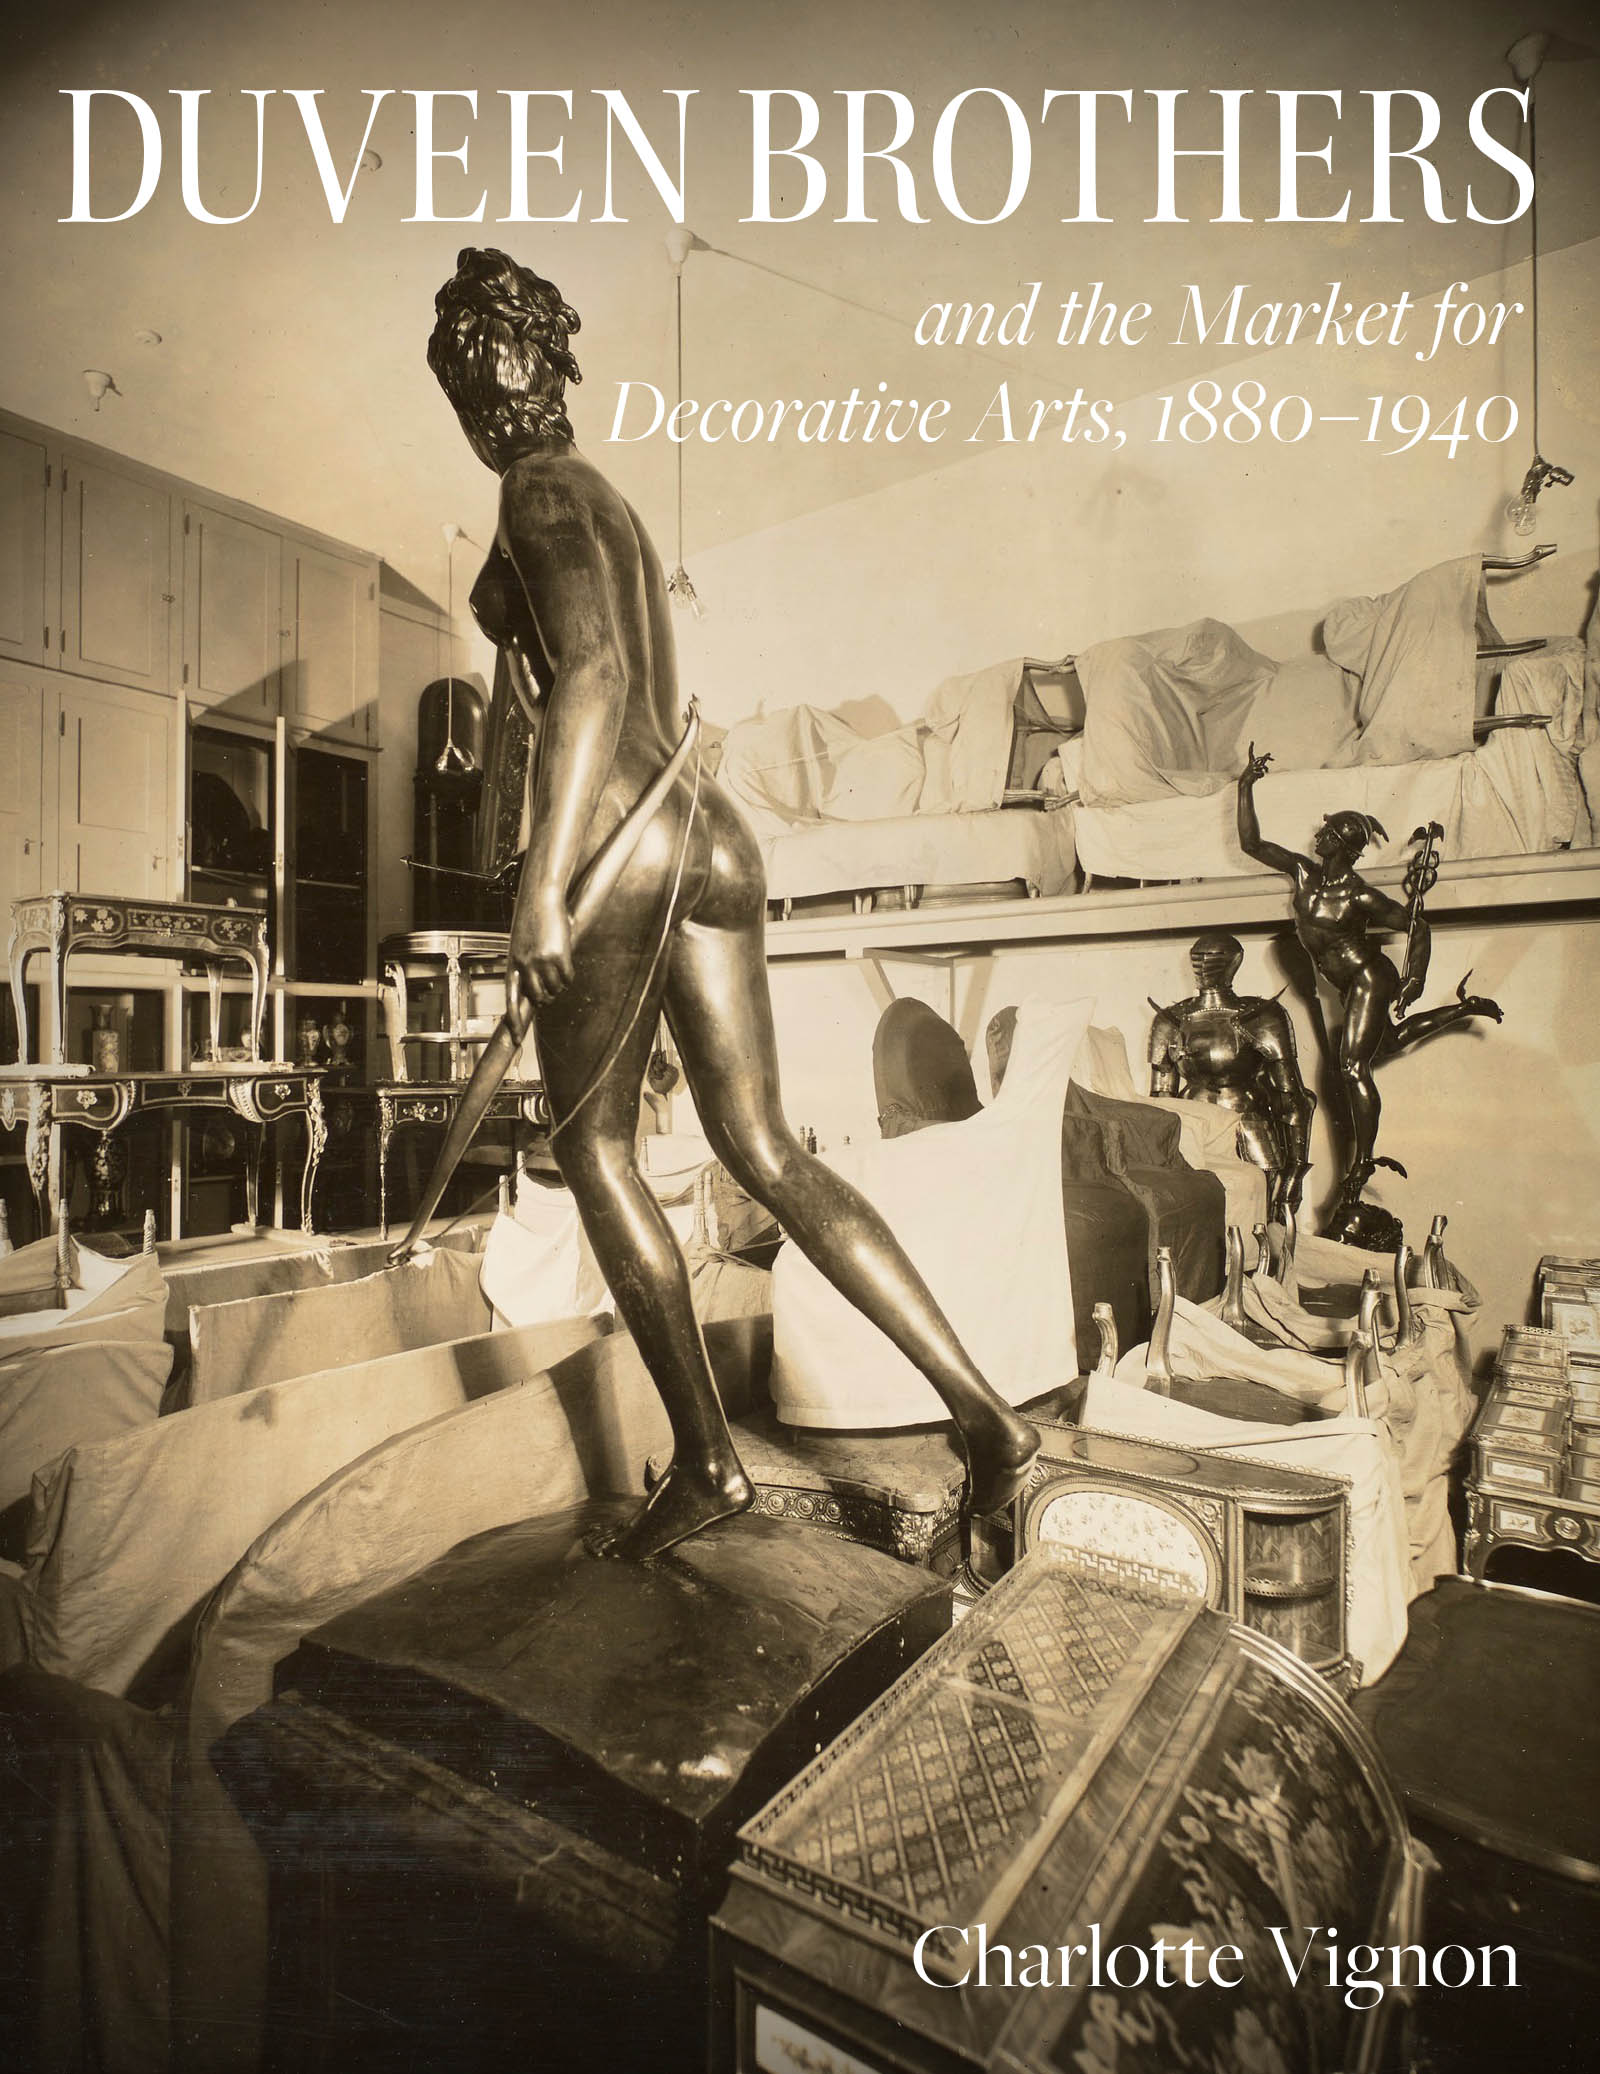 Duveen Brothers and the Market for Decorative Arts, 1880–1940